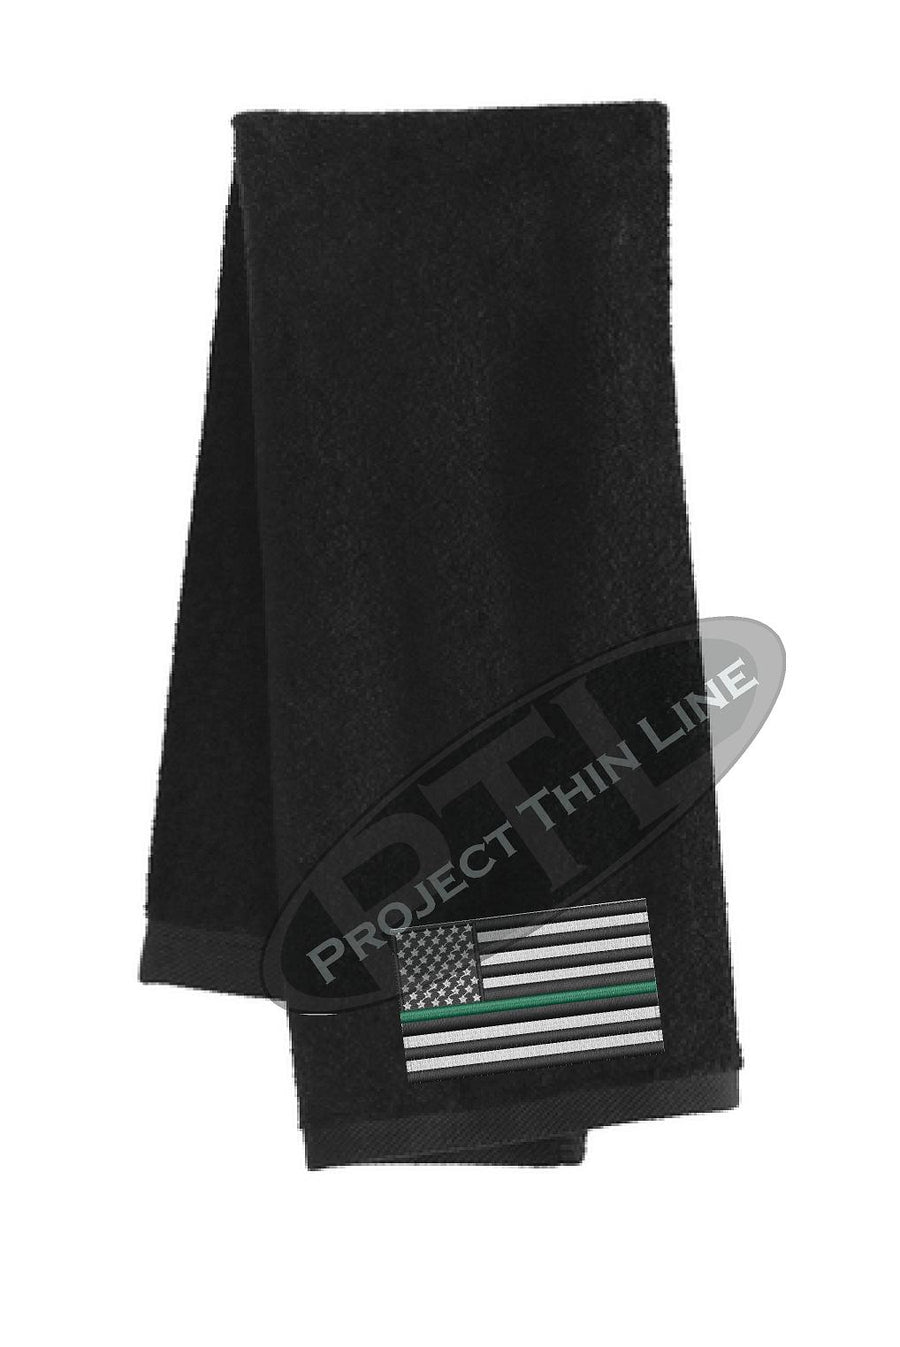 Thin GREEN Line Flag Workout Gym Towel